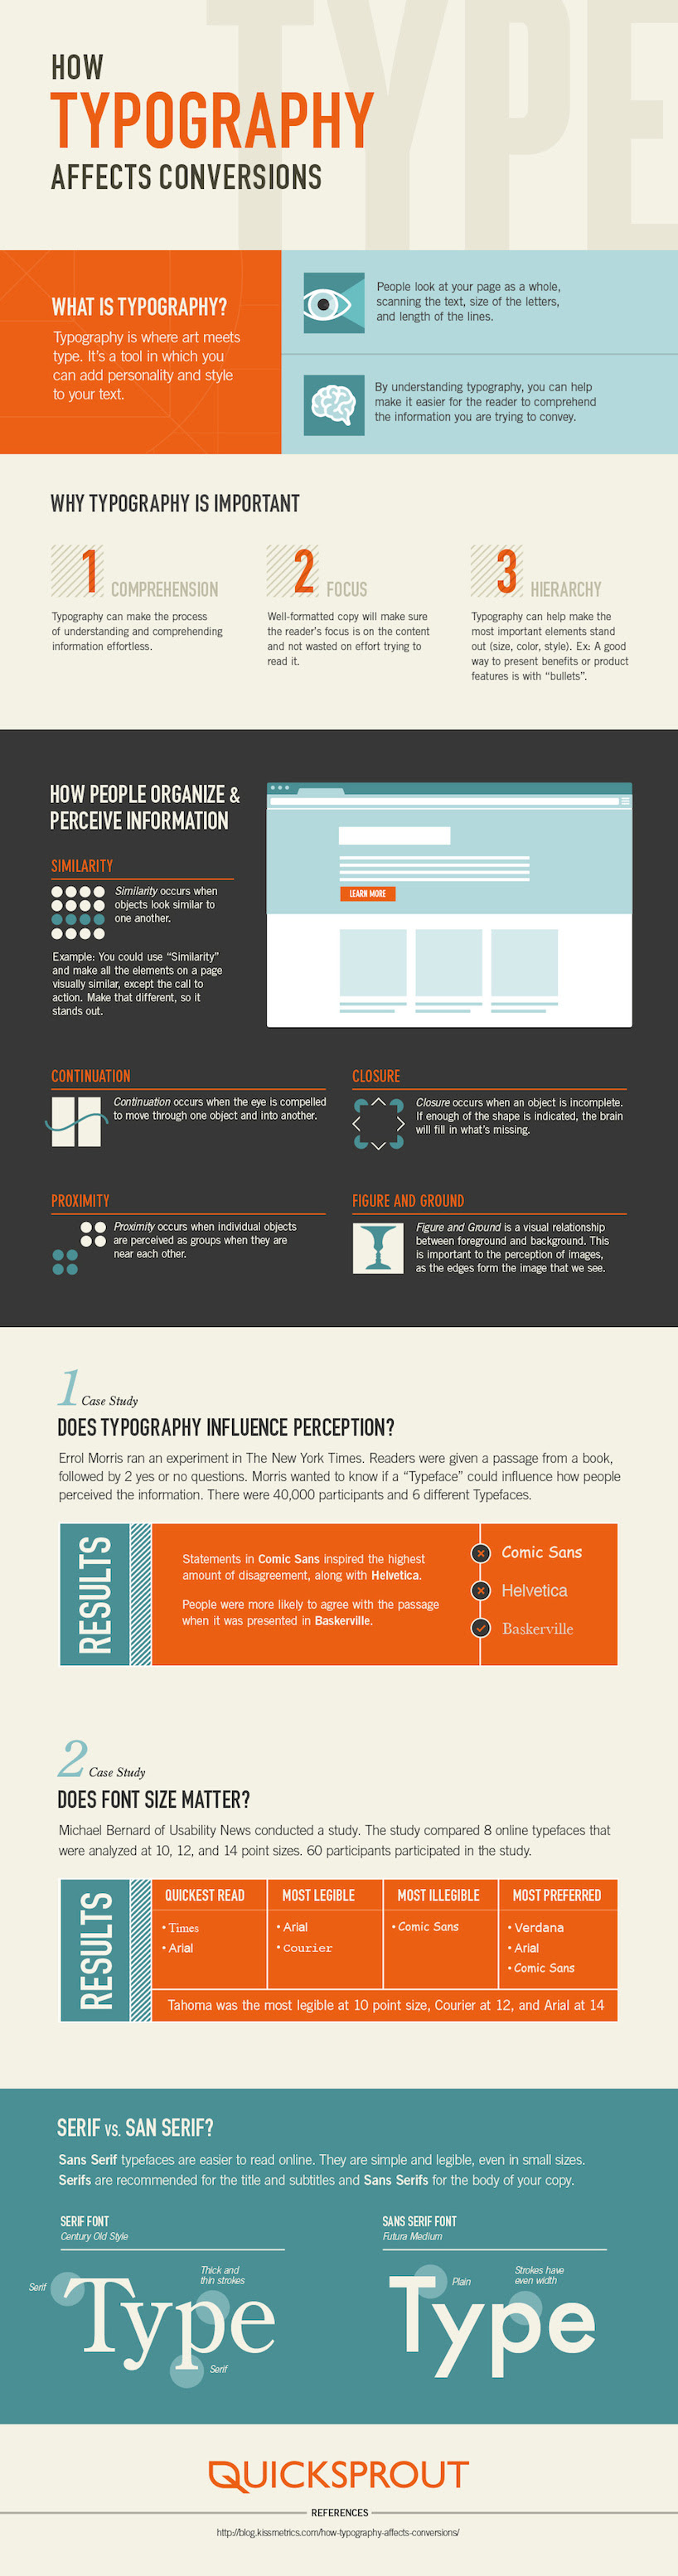 Infographic: How Typography Affects Conversions